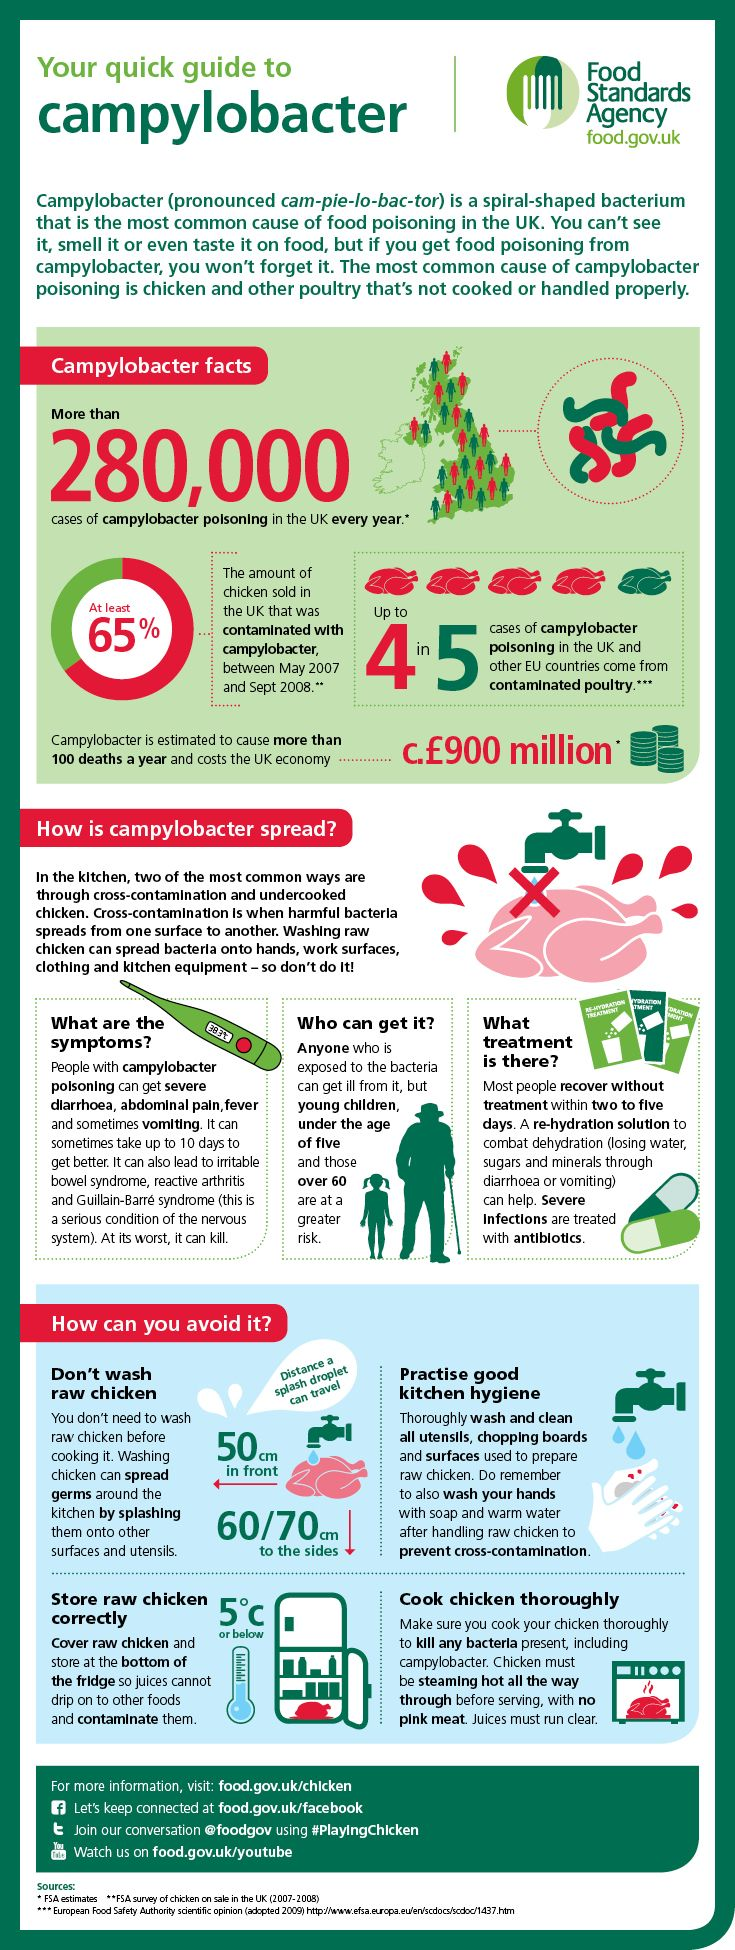 About a quarter of a million people in the UK will be struck down by campylobacter this year. Campylobacter is the most common cause of food poisoning in the UK. You can't see it, smell it or even taste it on food, but if it affects you, you won't forget it and it may kill you.